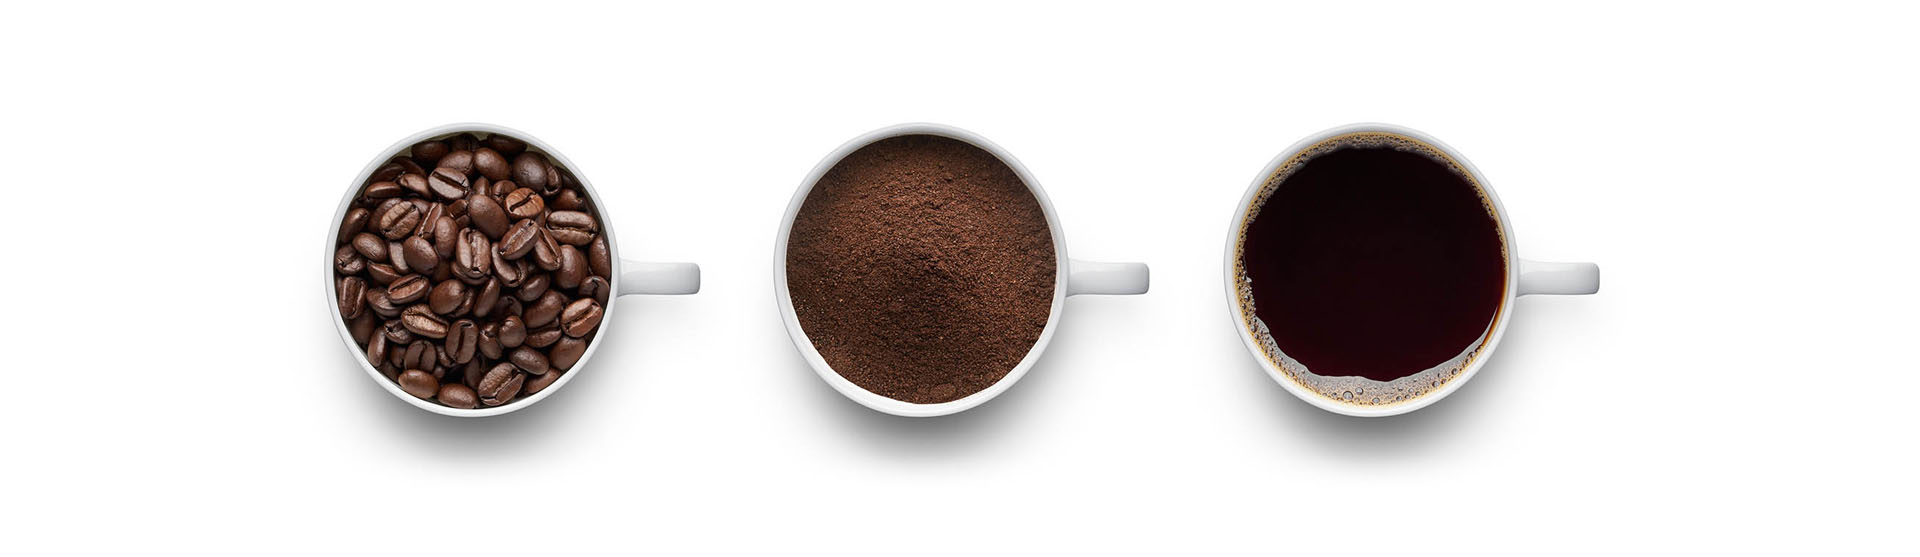 Coffee beans, ground coffee and cup of black coffee